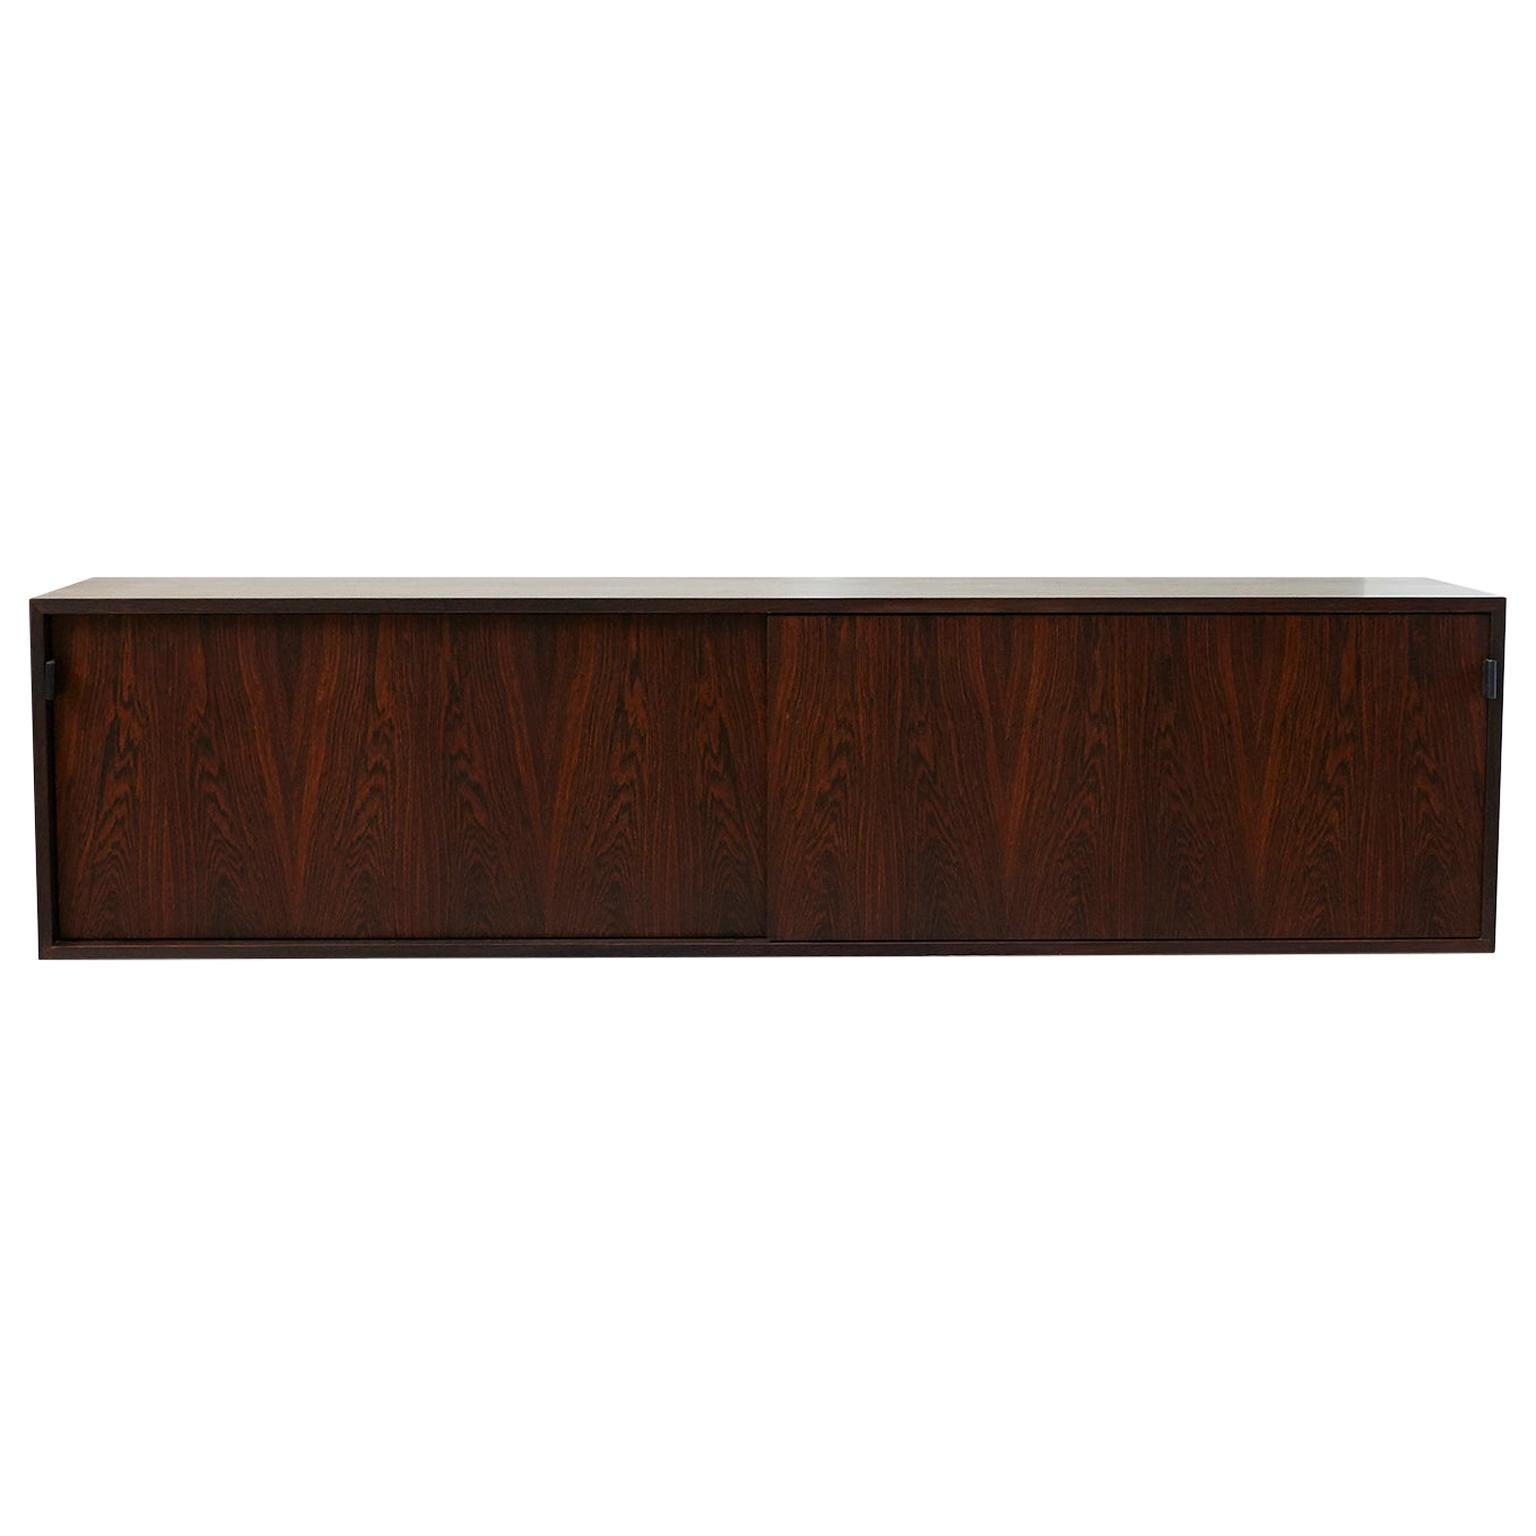 Wall Hanging Rosewood Credenza by Florence Knoll